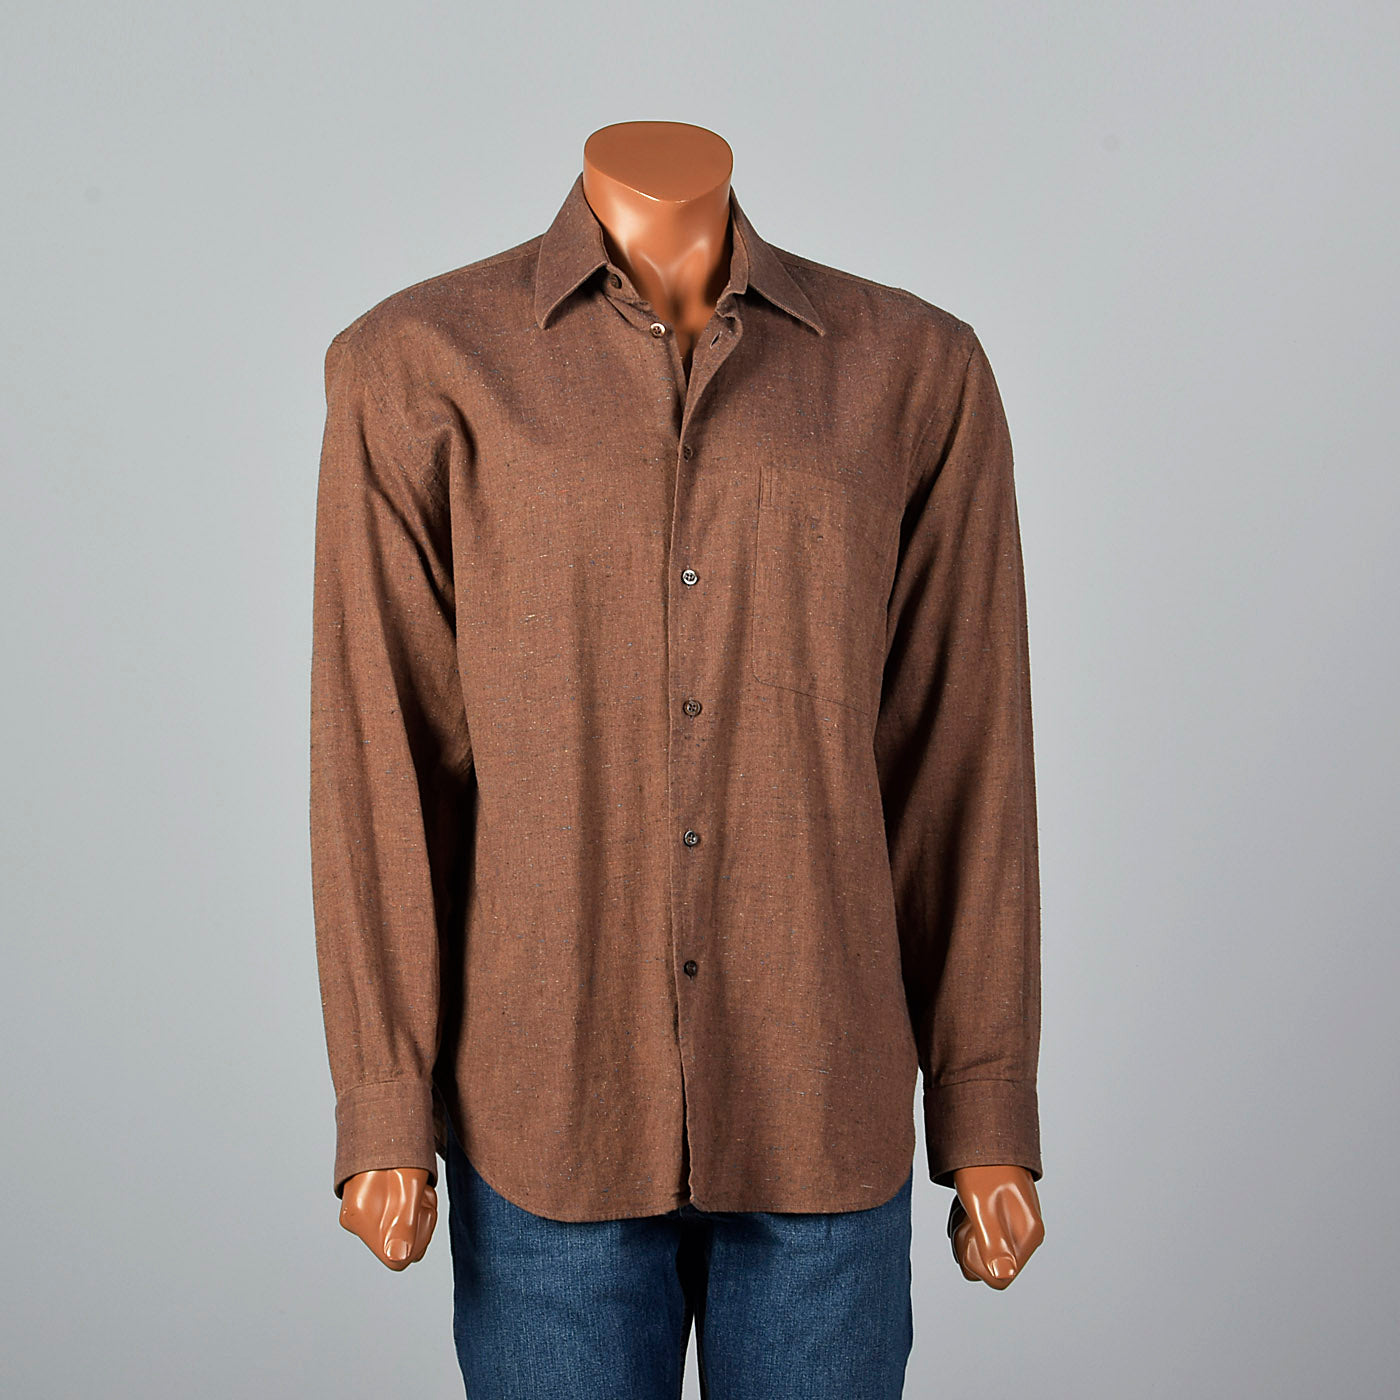 2000s Brown Shirt with Multicolor Flecks